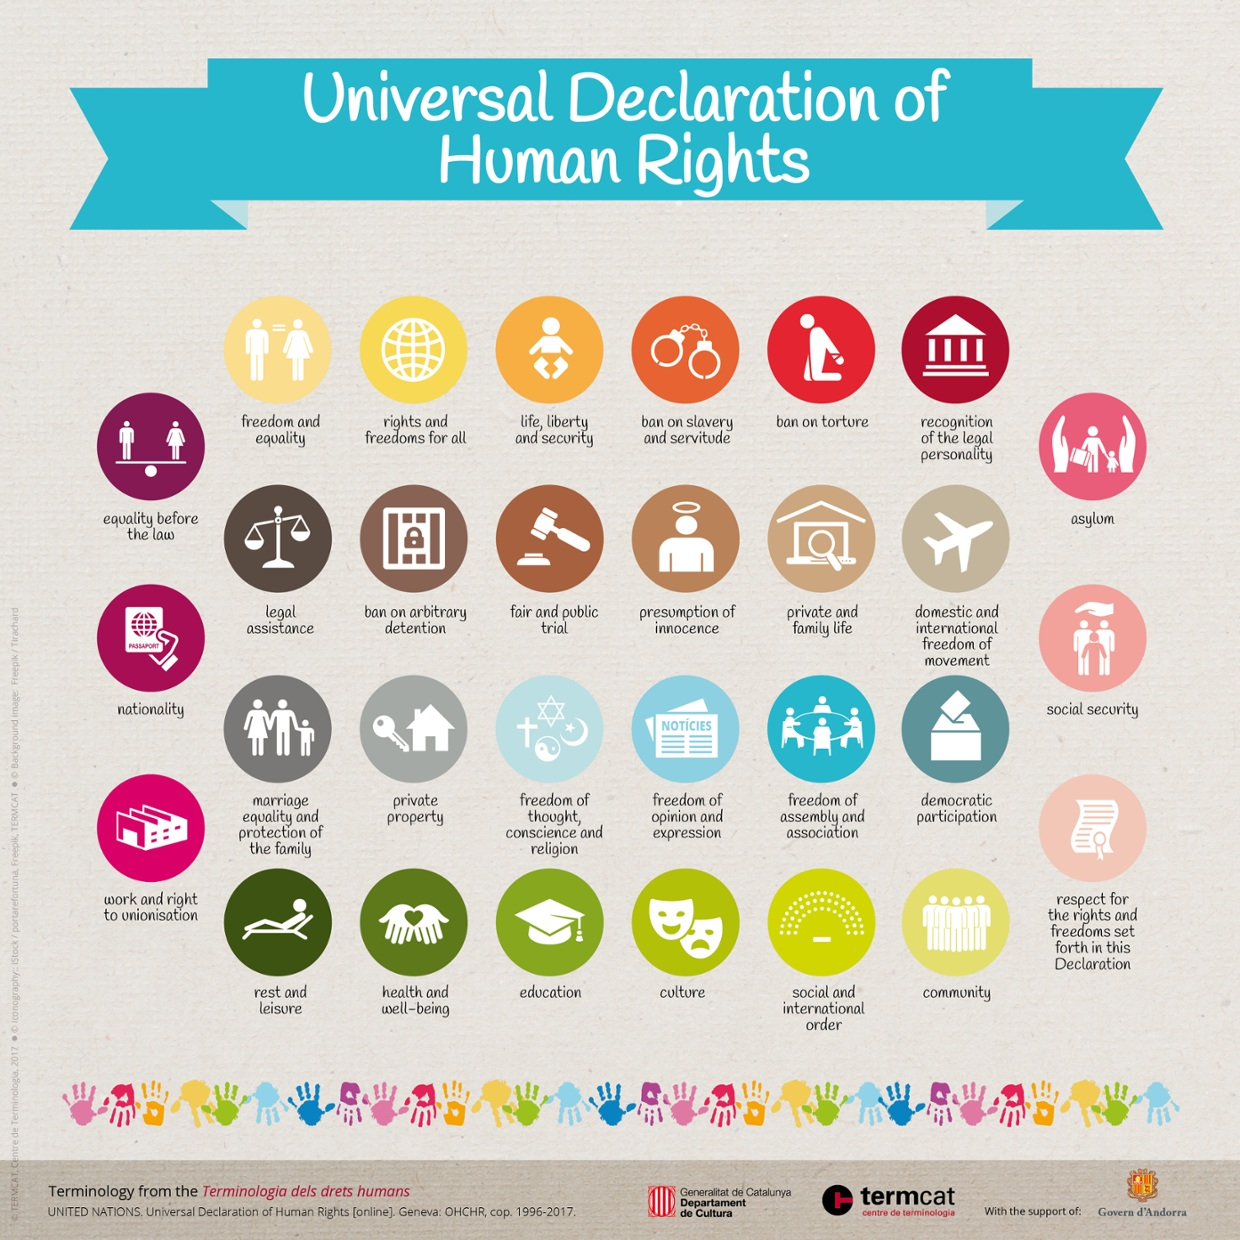 universal declaration of human rights International Human Rights Law 2 years ago 5634